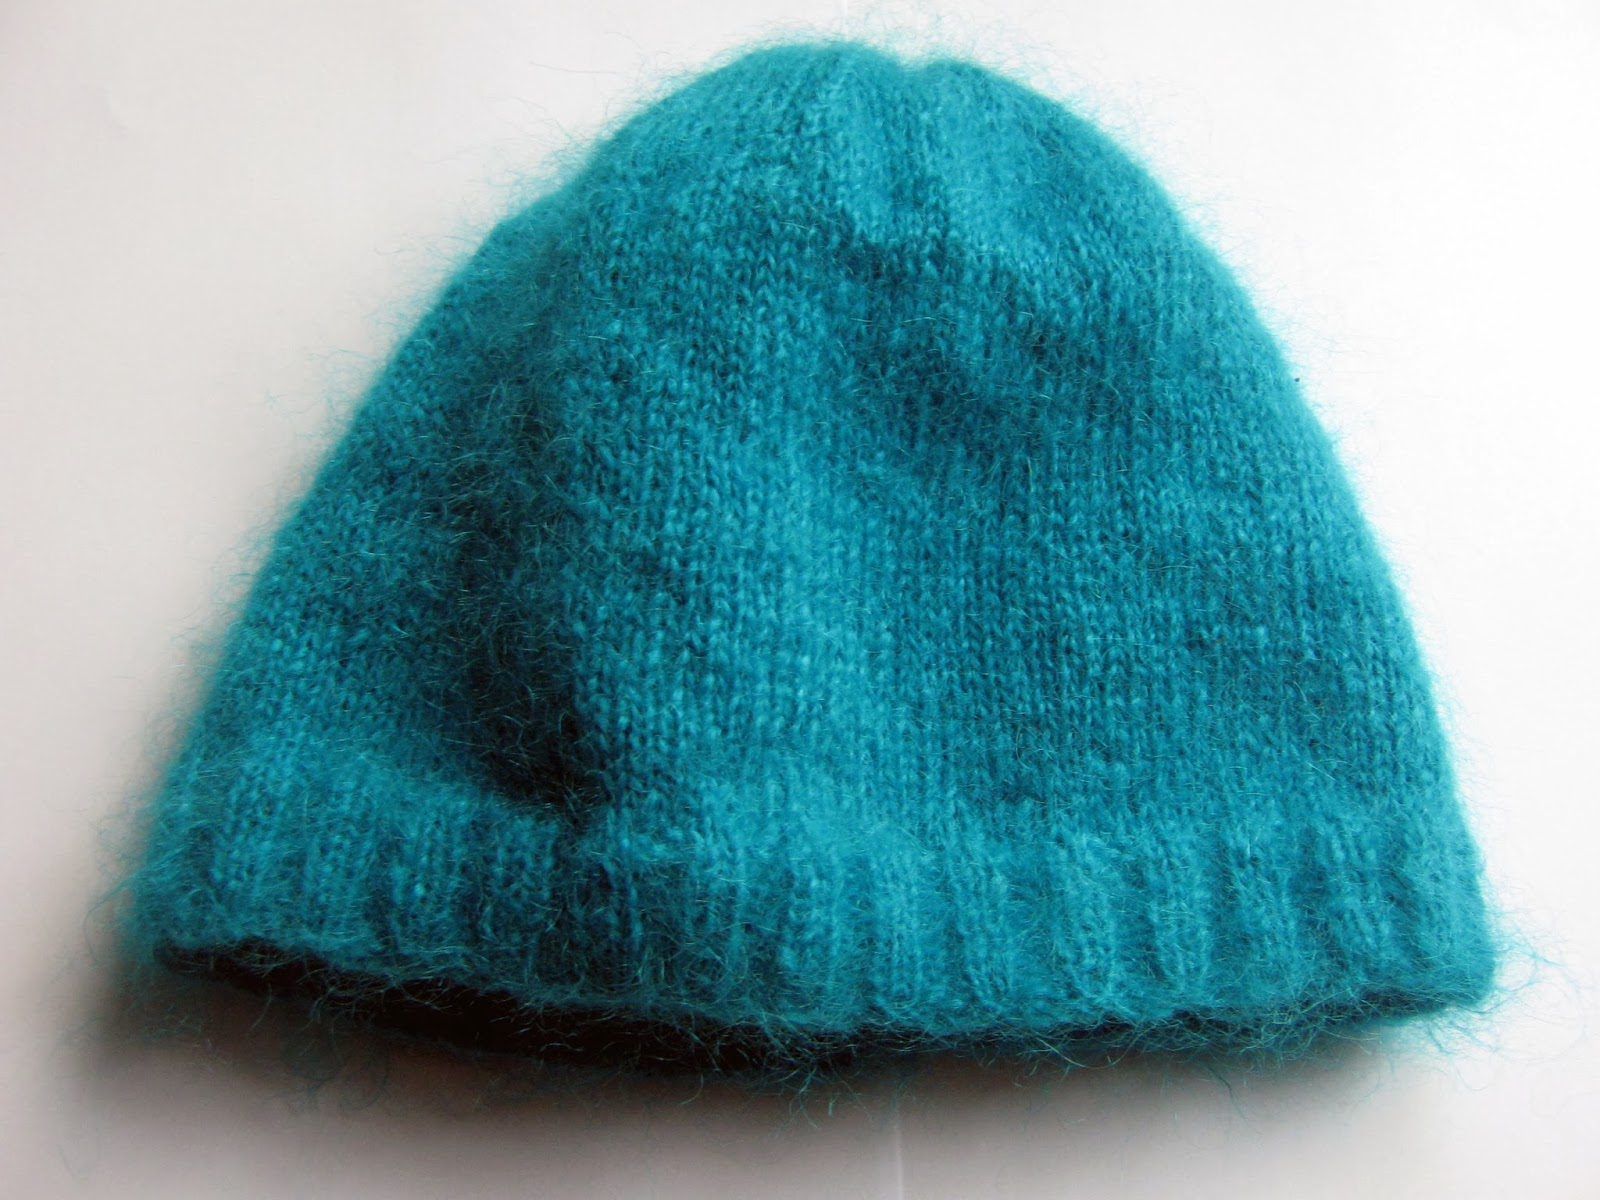 Knitting Patterns For Mohair Yarn : Free Knitting Pattern: Mohair Beanie Awake + Make A ...